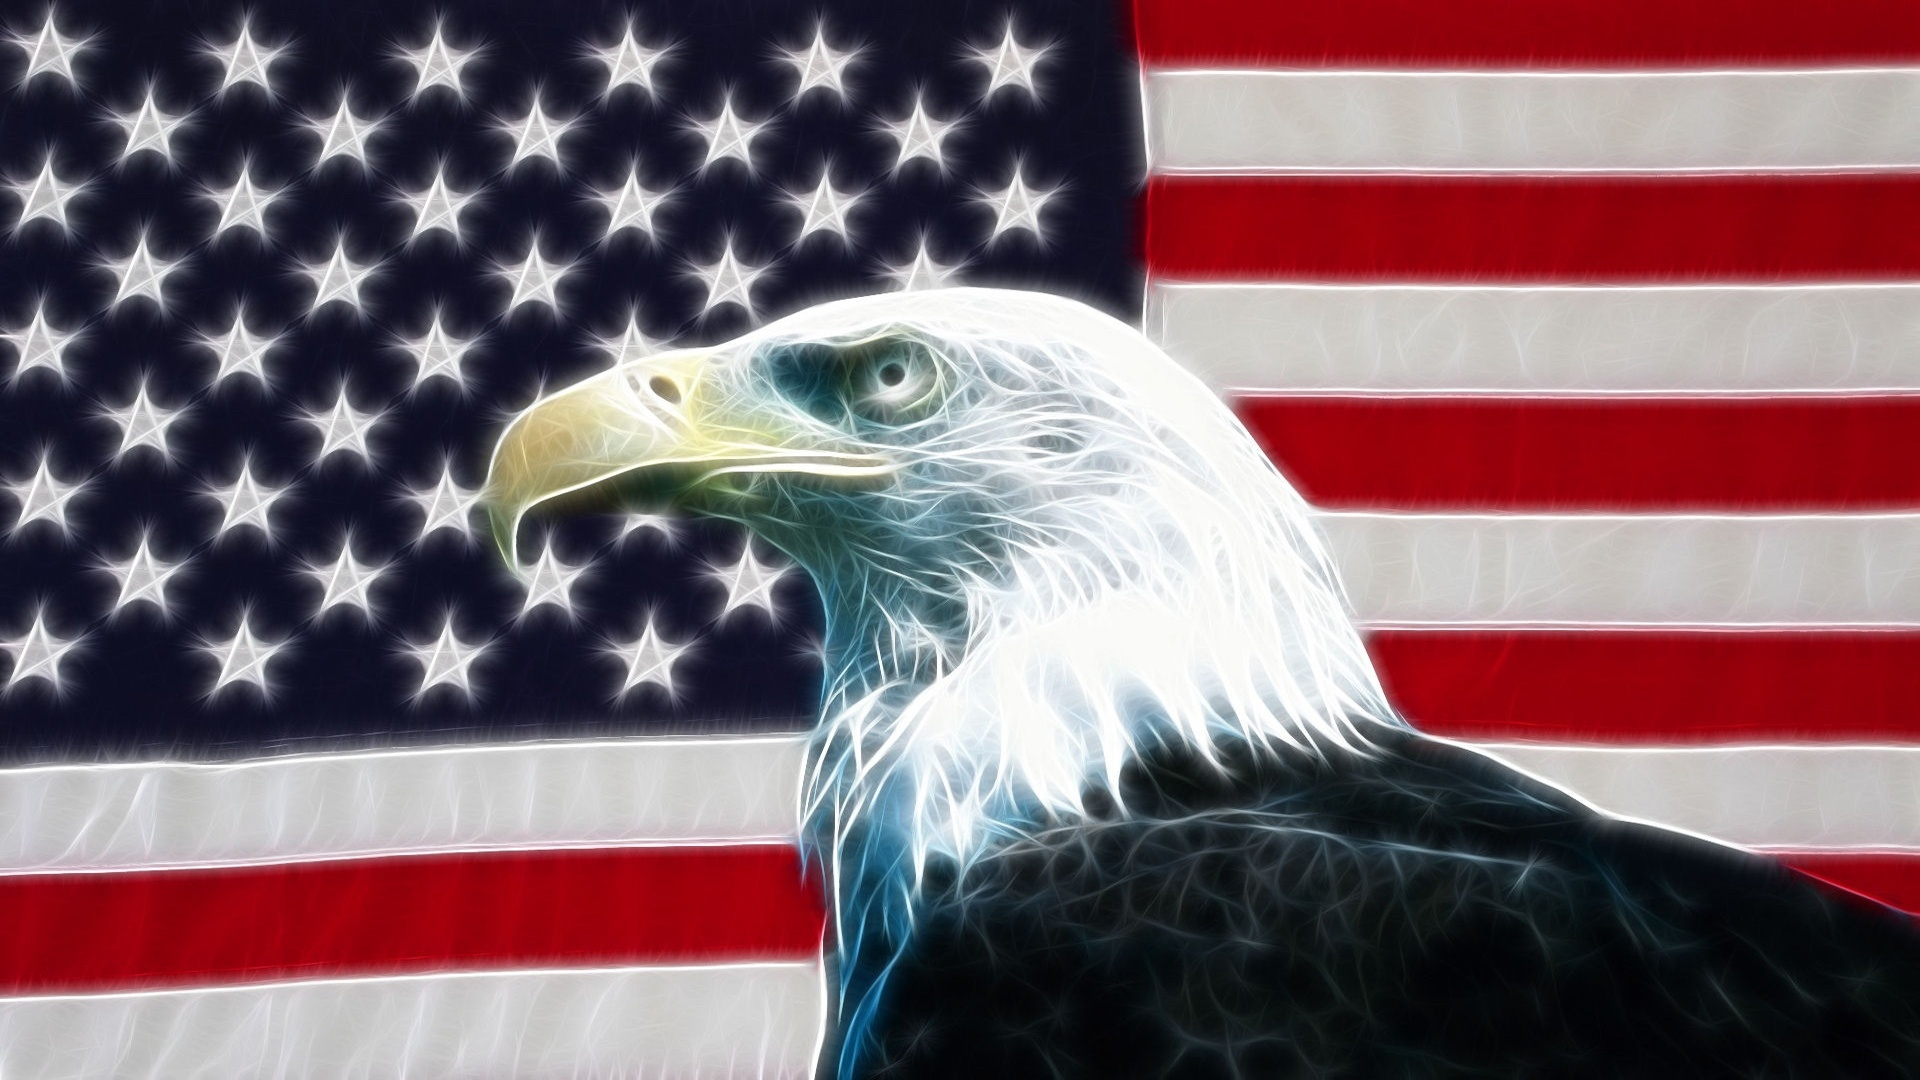 american history wallpaper - photo #41